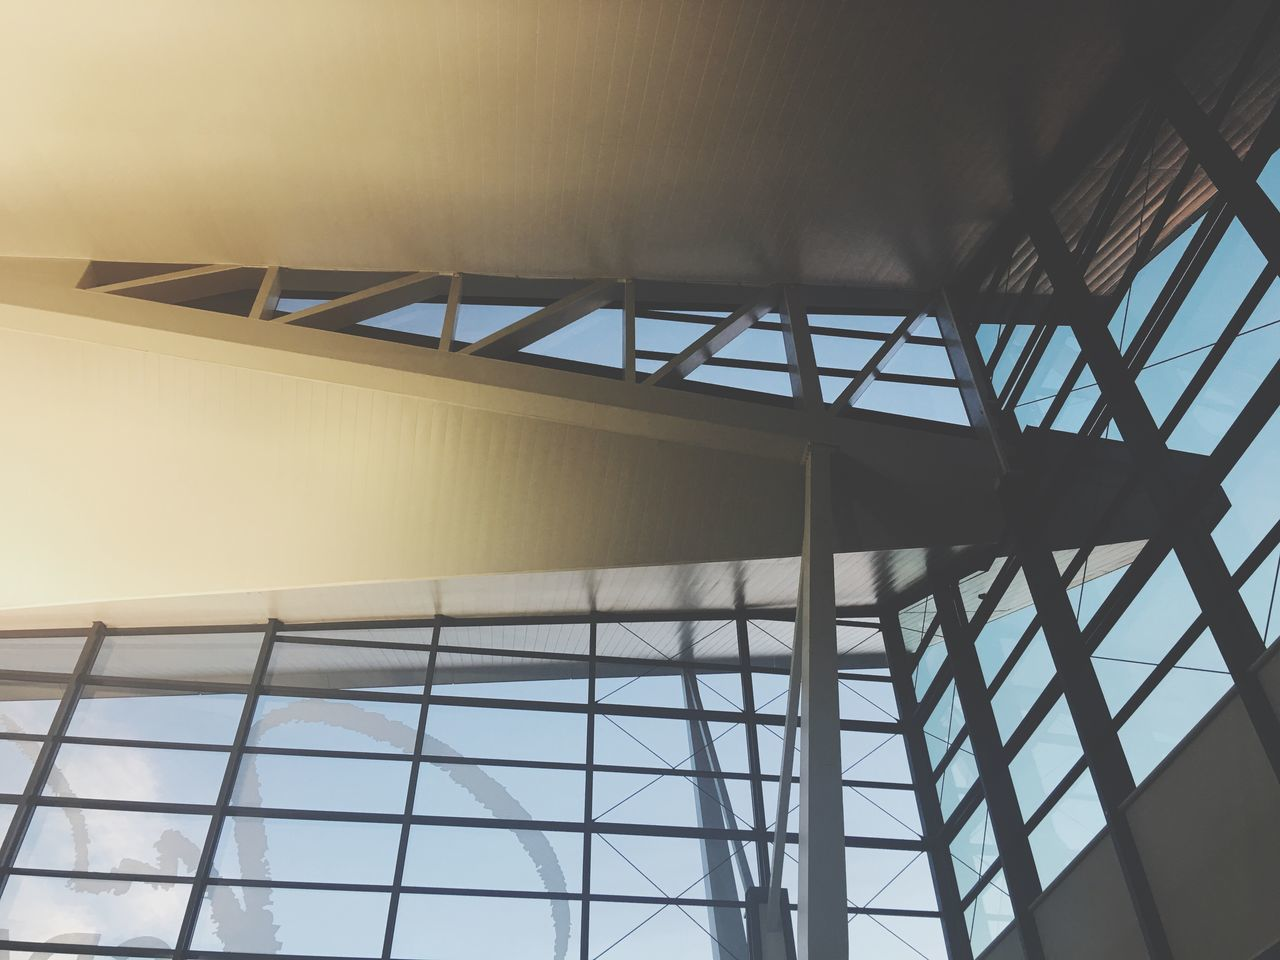 Architecture EyeEm Best Shots Airport Traveling Pivotal Ideas